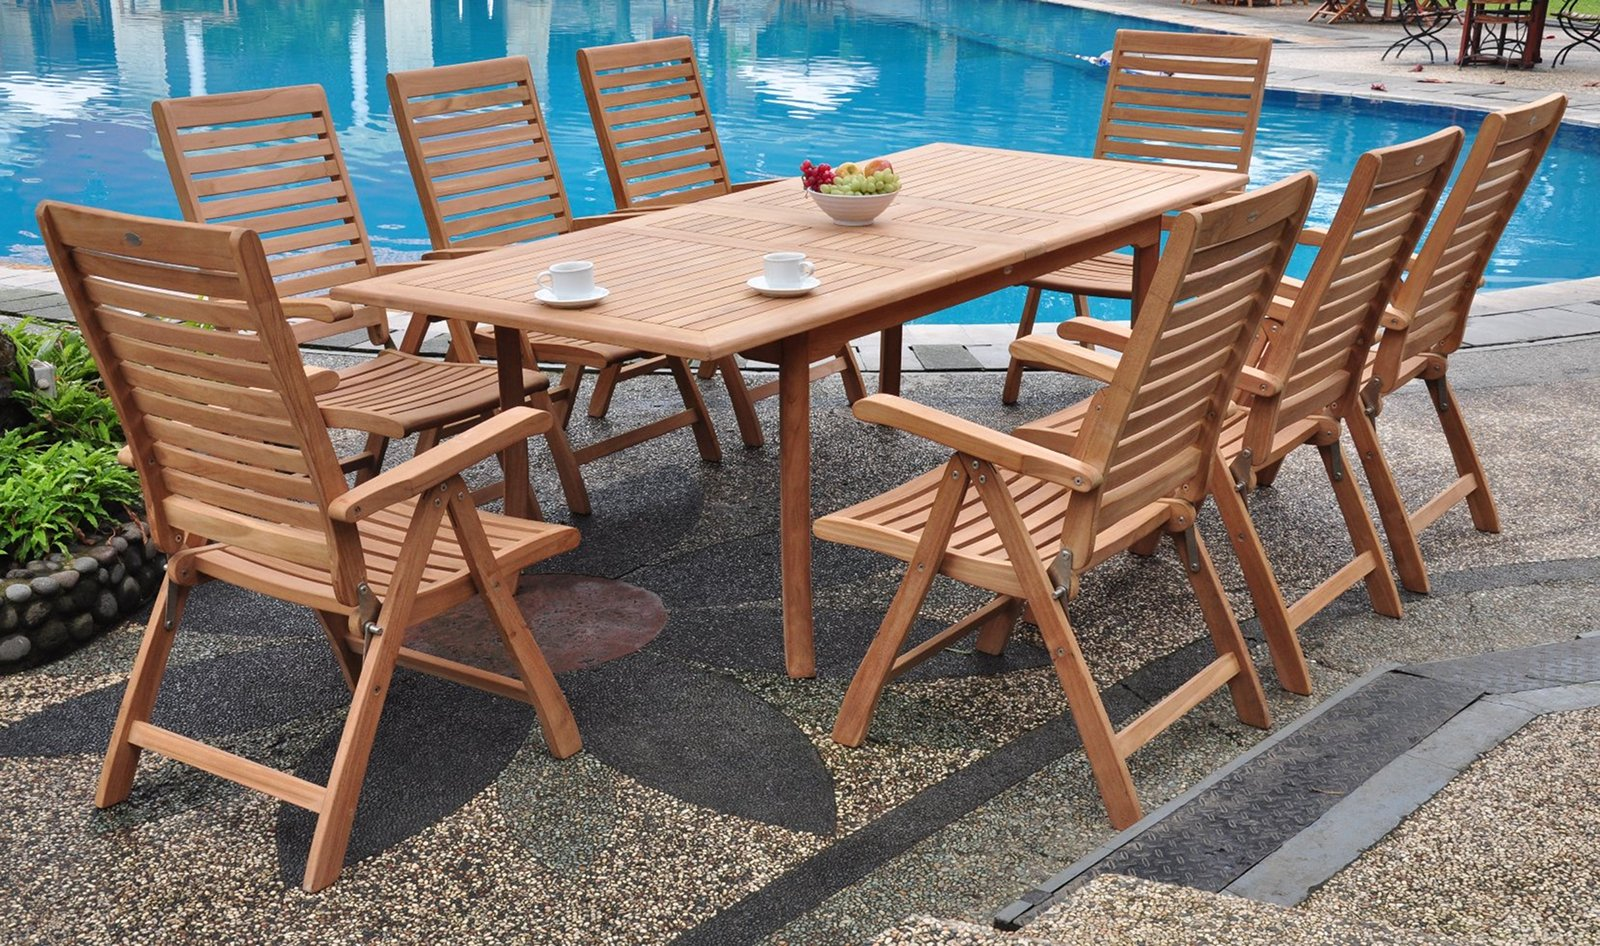 9 PC TEAK GARDEN OUTDOOR RECLINING PATIO FURNITURE POOL ASHLEY DINING DECK